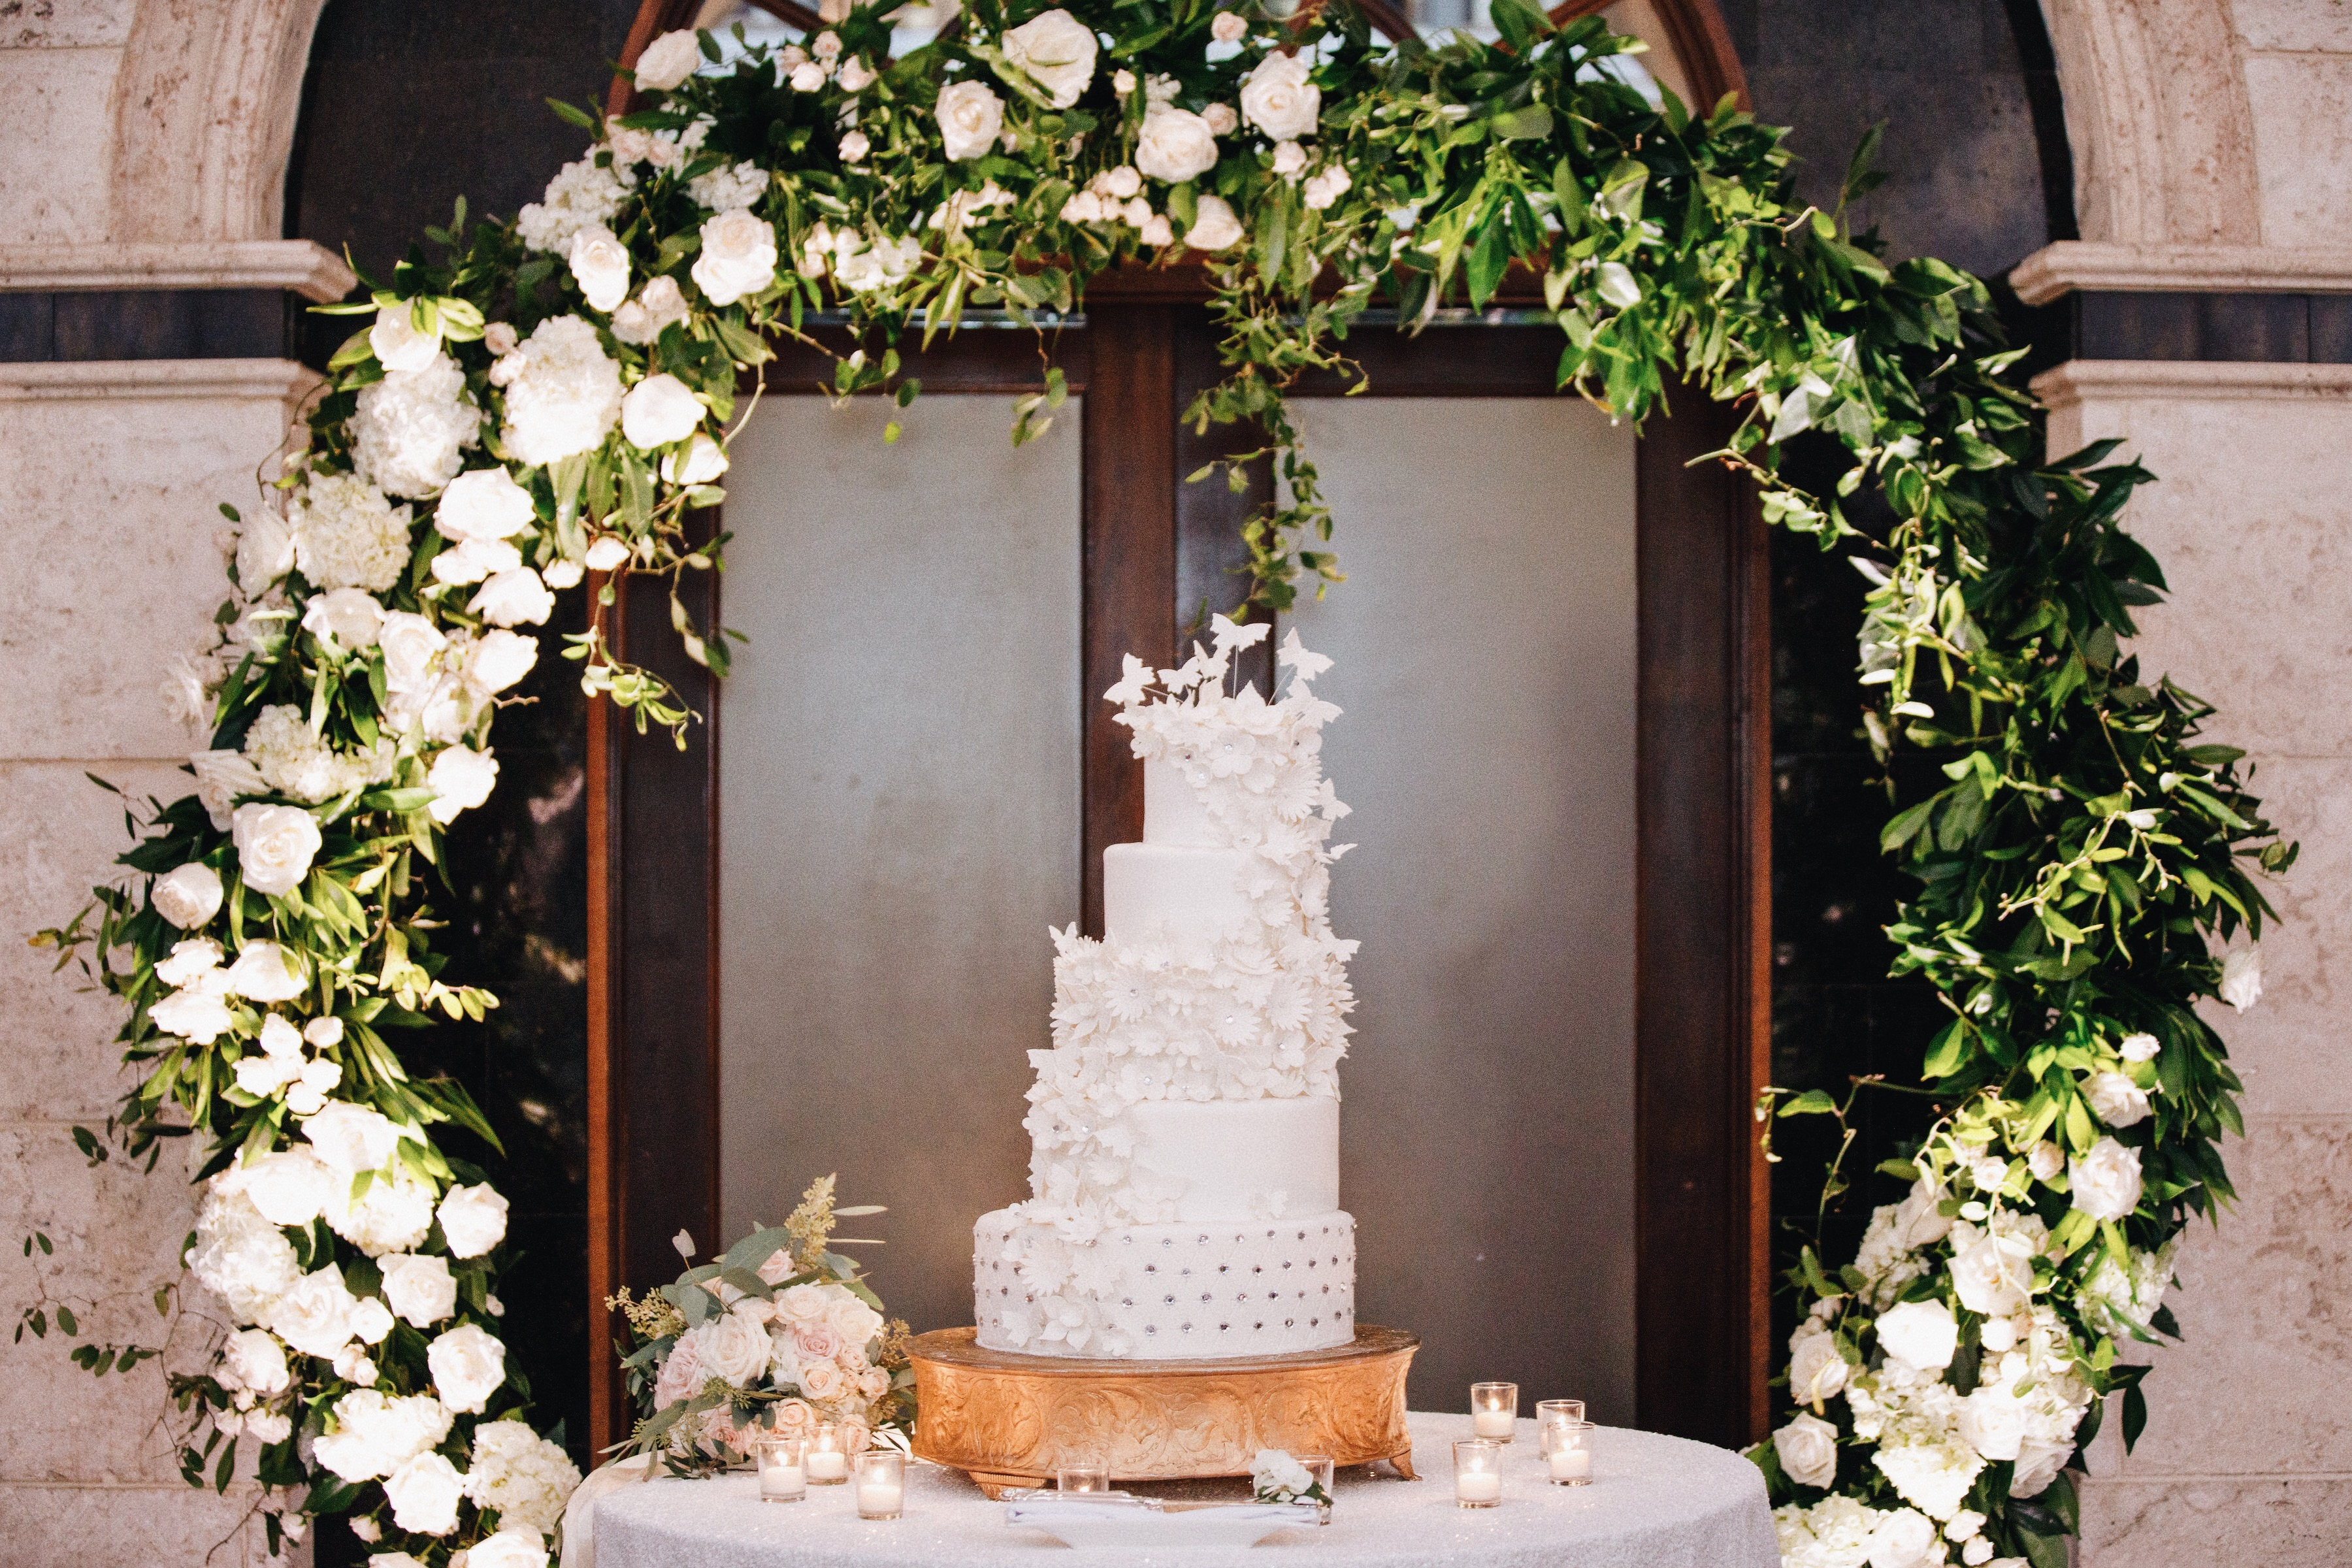 Wedding Cake Costs